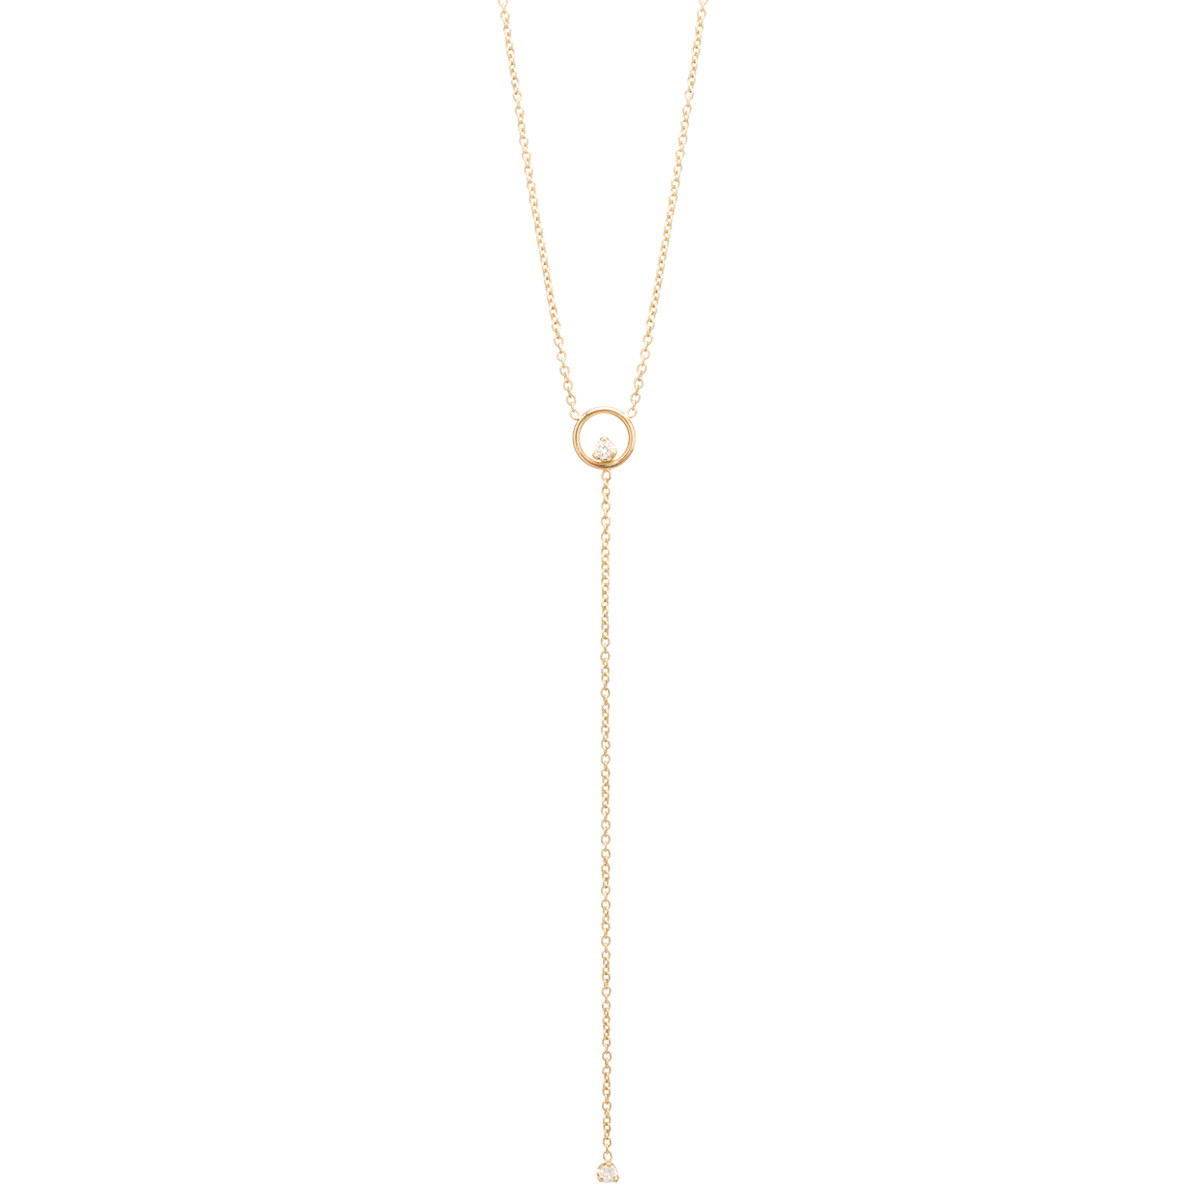 14K CIRCLE PRONG DIAMOND LARIAT NECKLACE